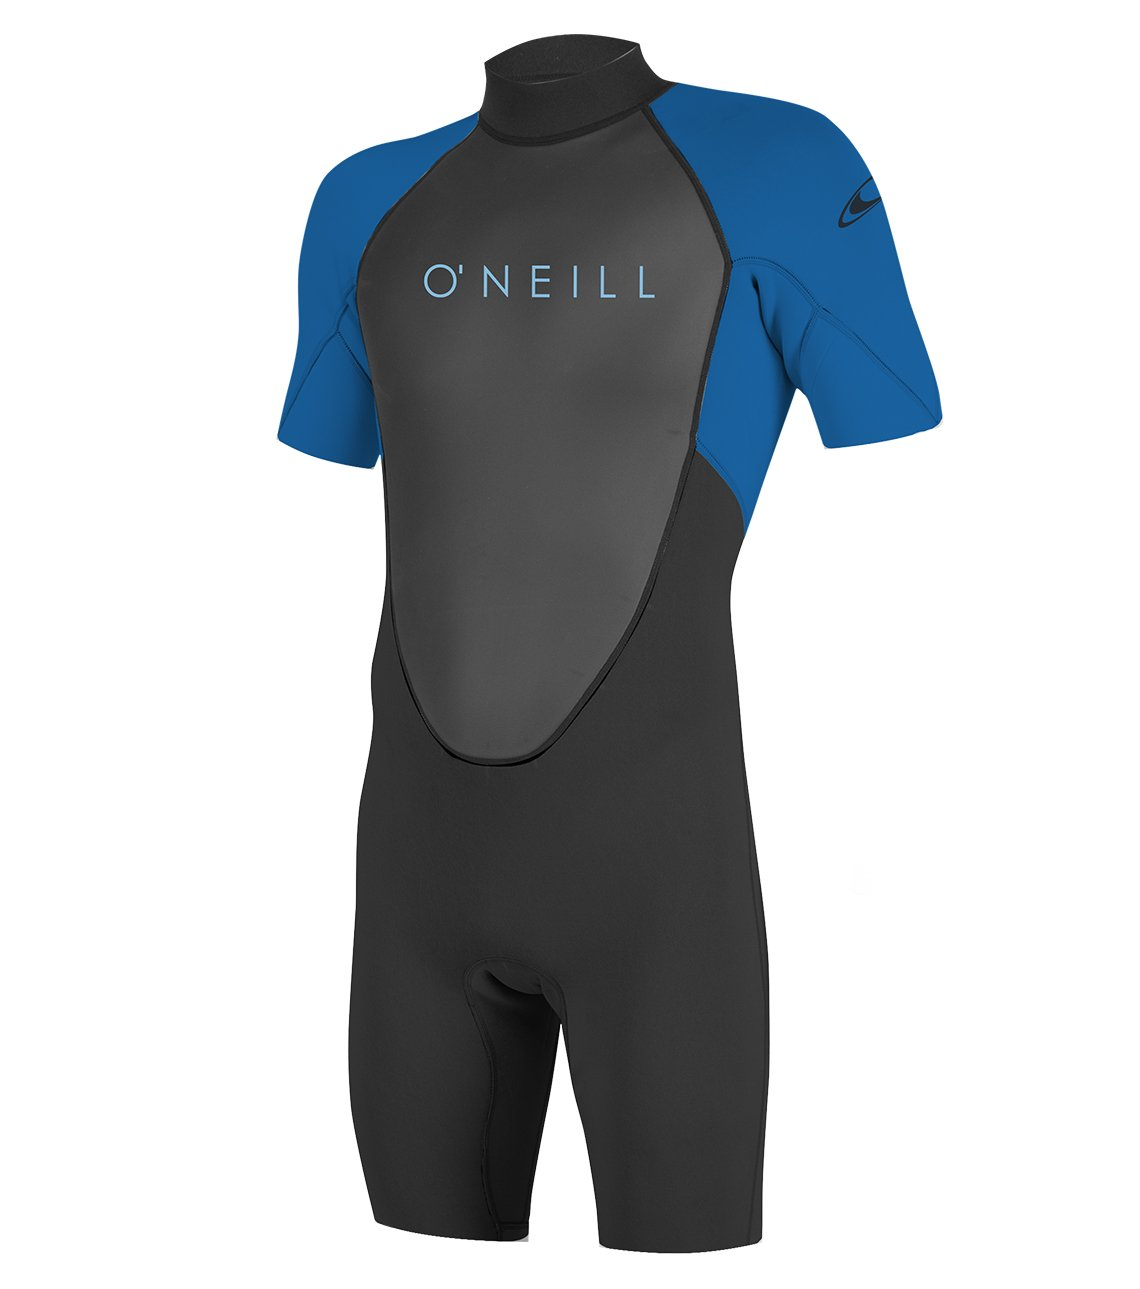 O'Neill Youth Reactor-2 2mm Back Zip Short Sleeve Spring Wetsuit, Black/Ocean, 6 by O'Neill Wetsuits (Image #1)